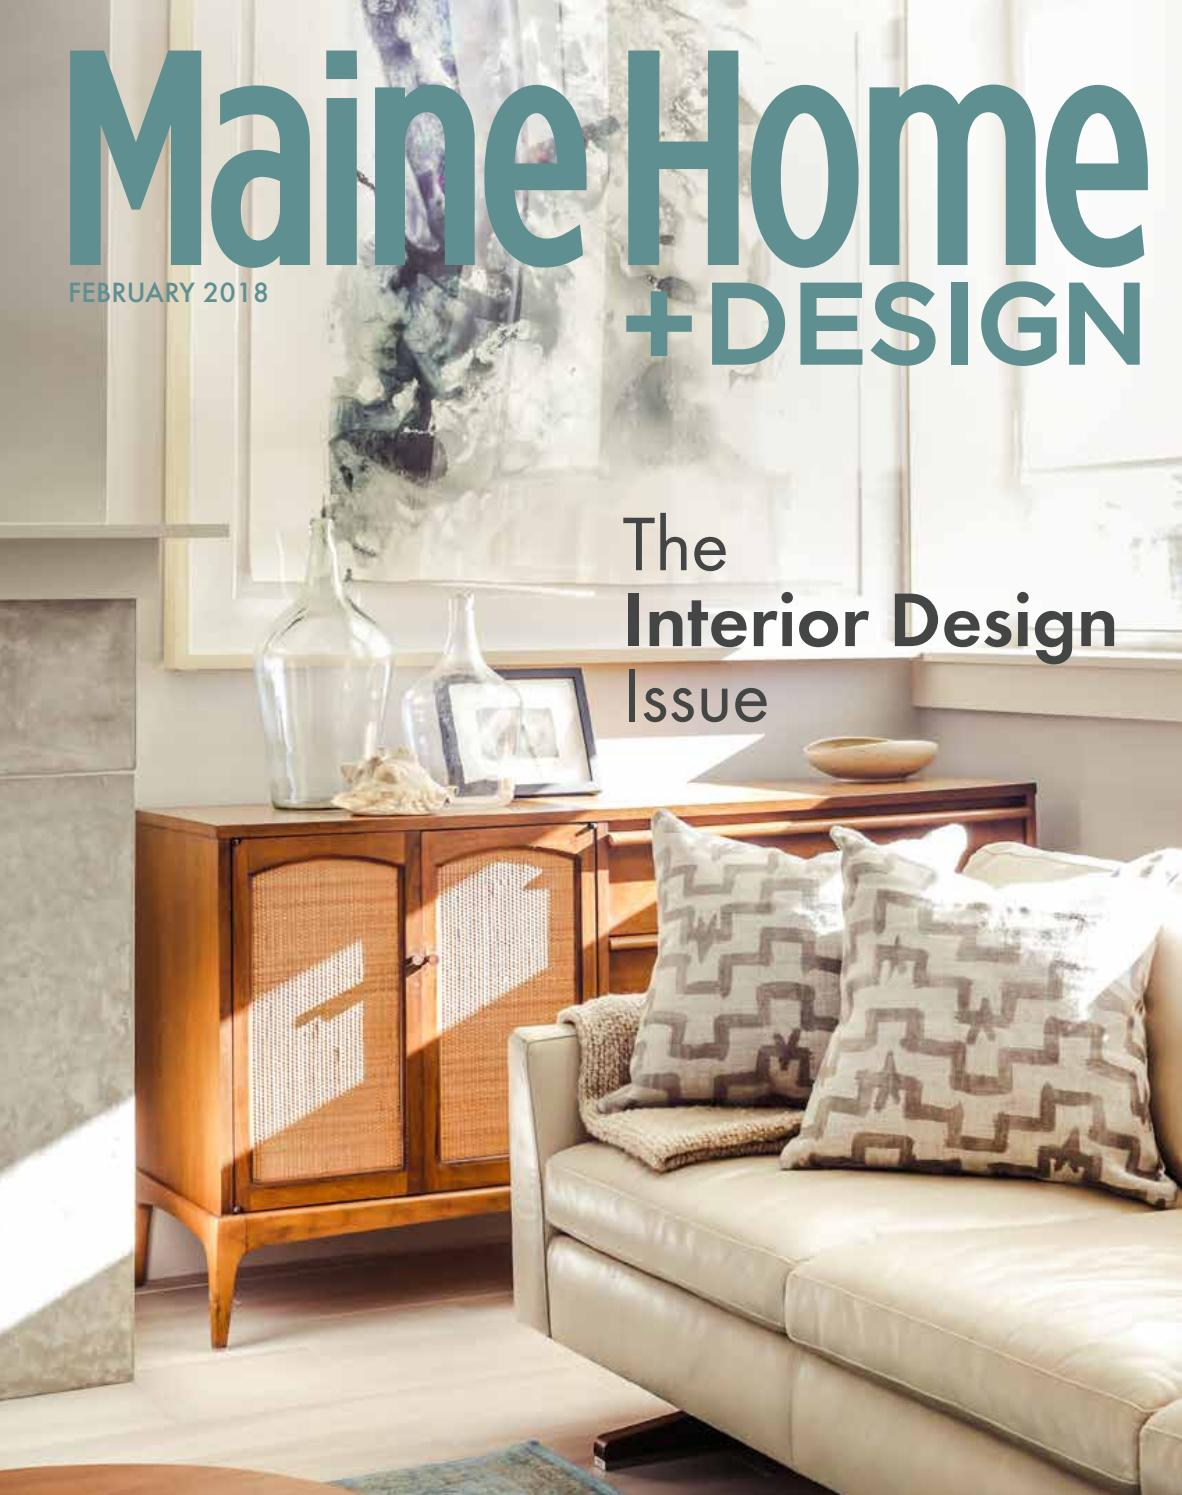 ranch home remodel annie selke ranch house makeover home redesign Maine Home+Design February 2018